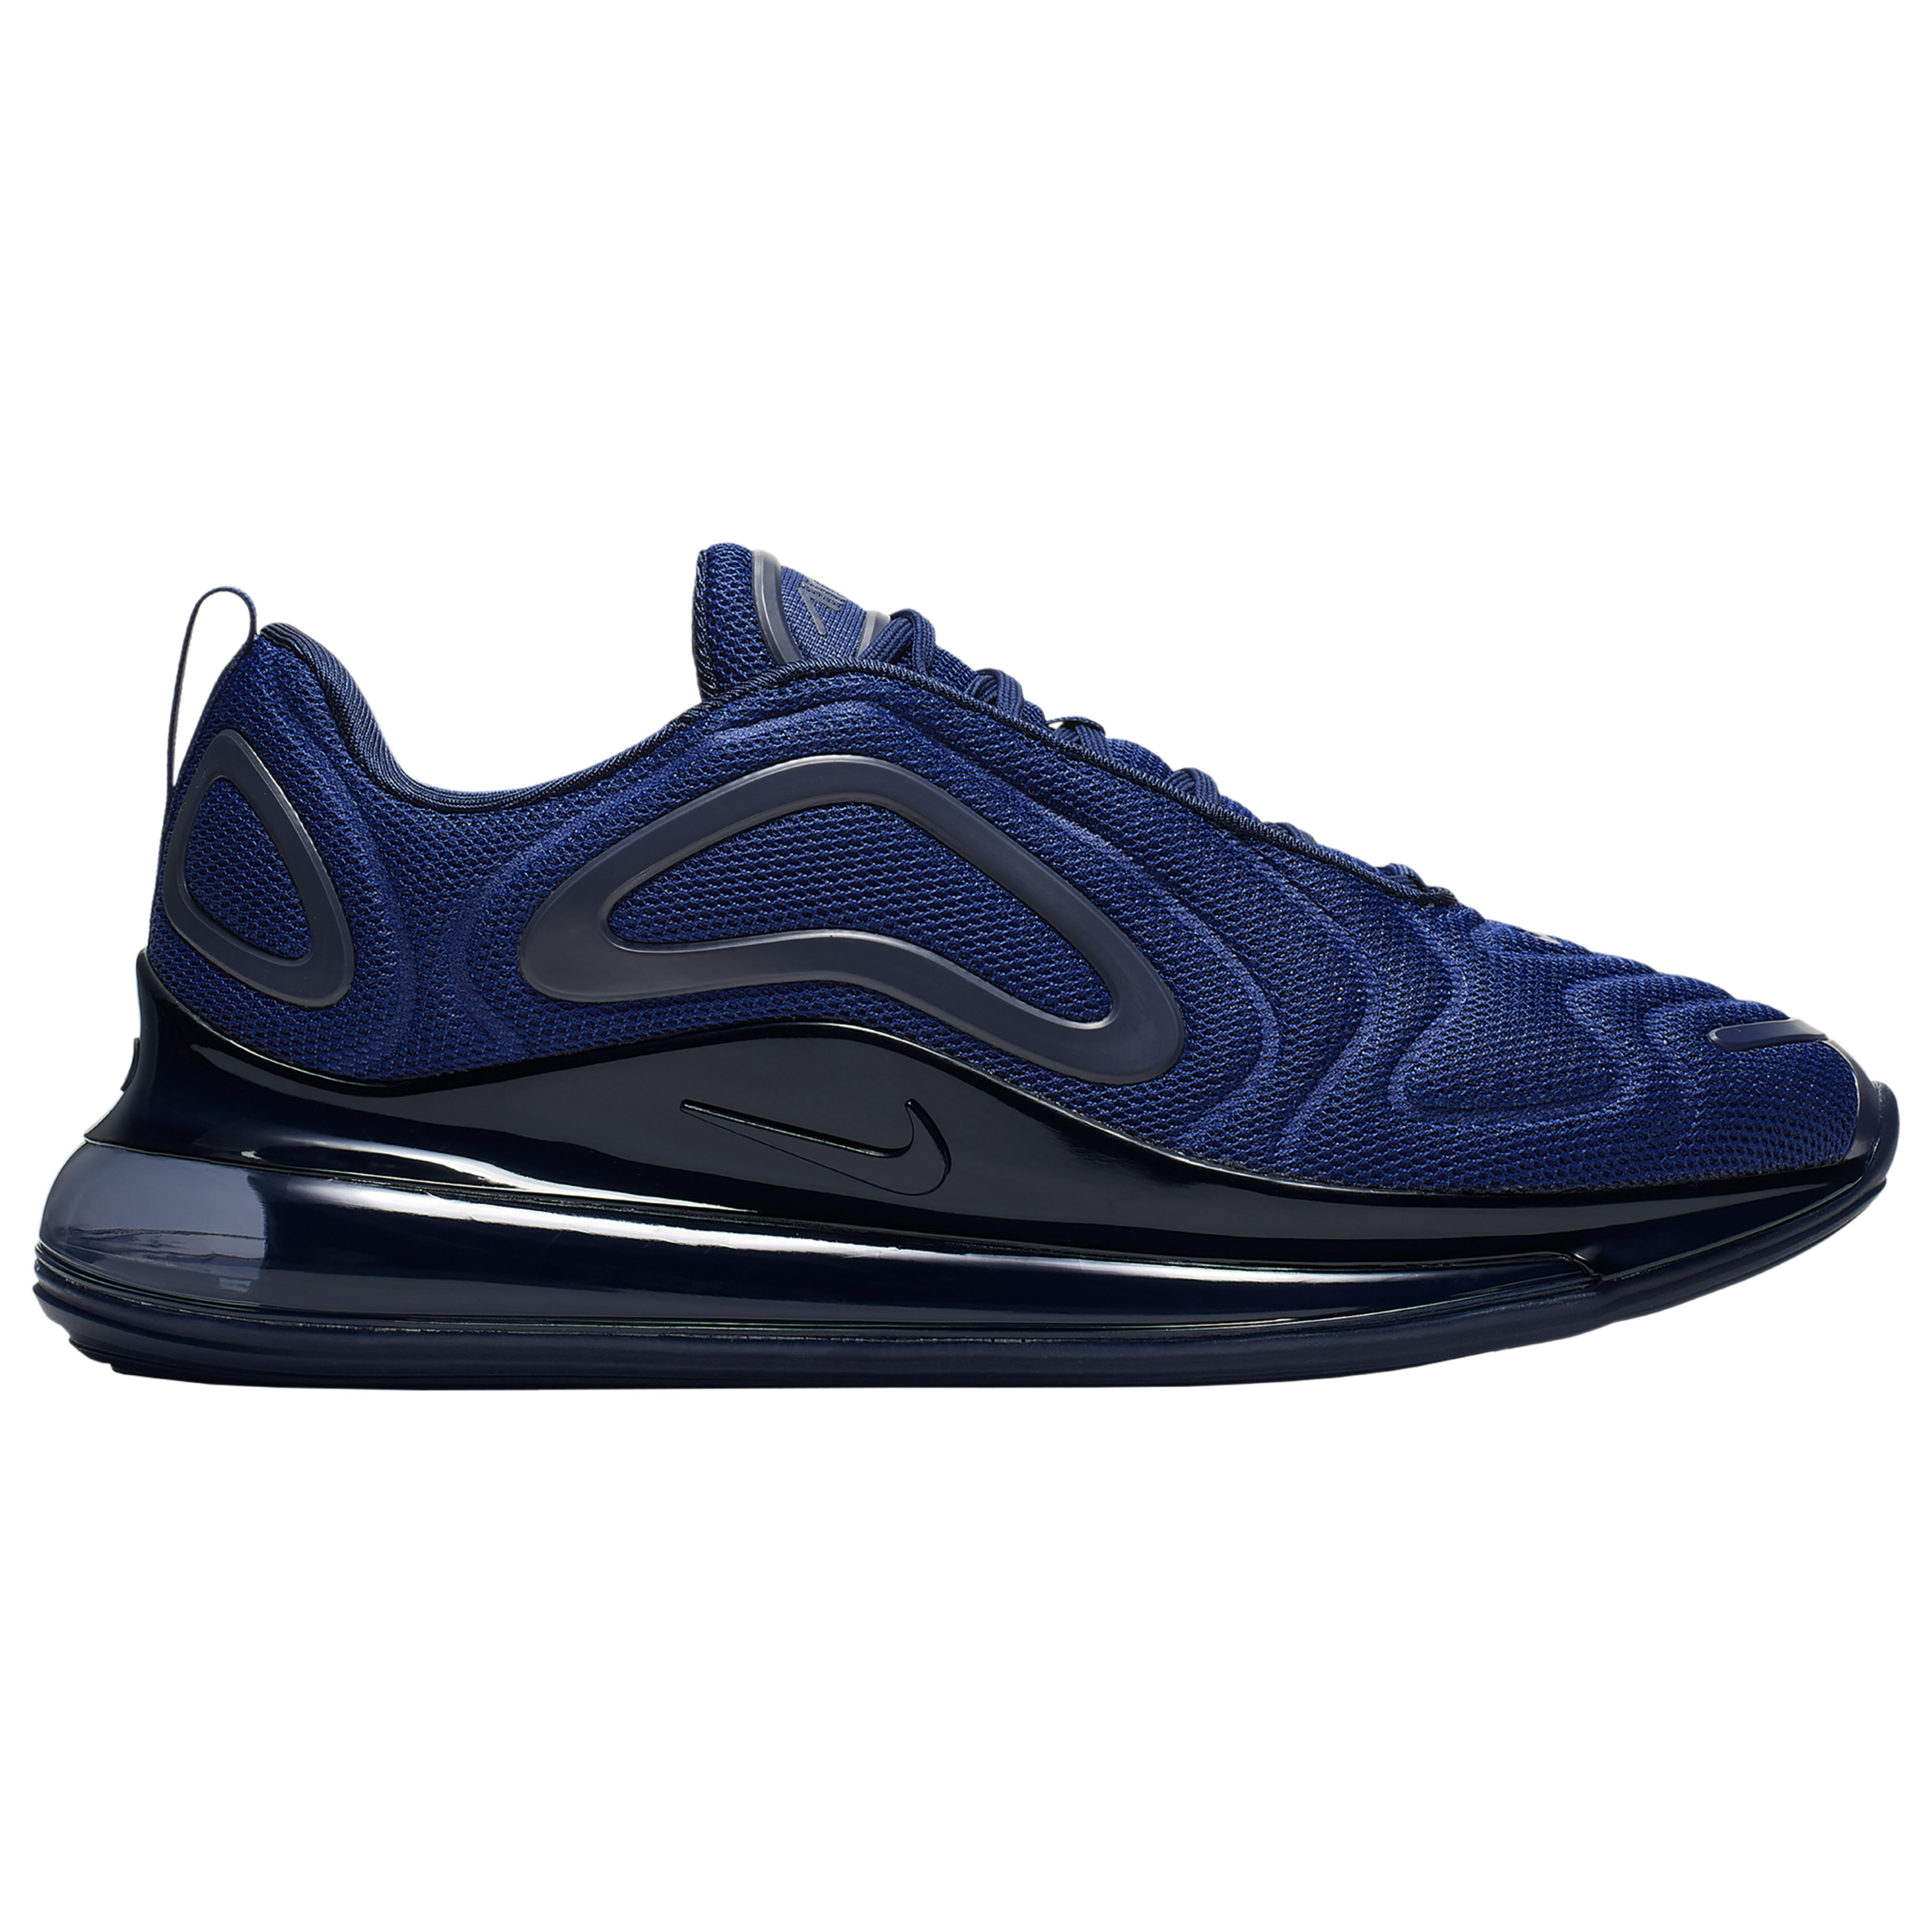 Nike Synthetic Air Max 720 in Blue for